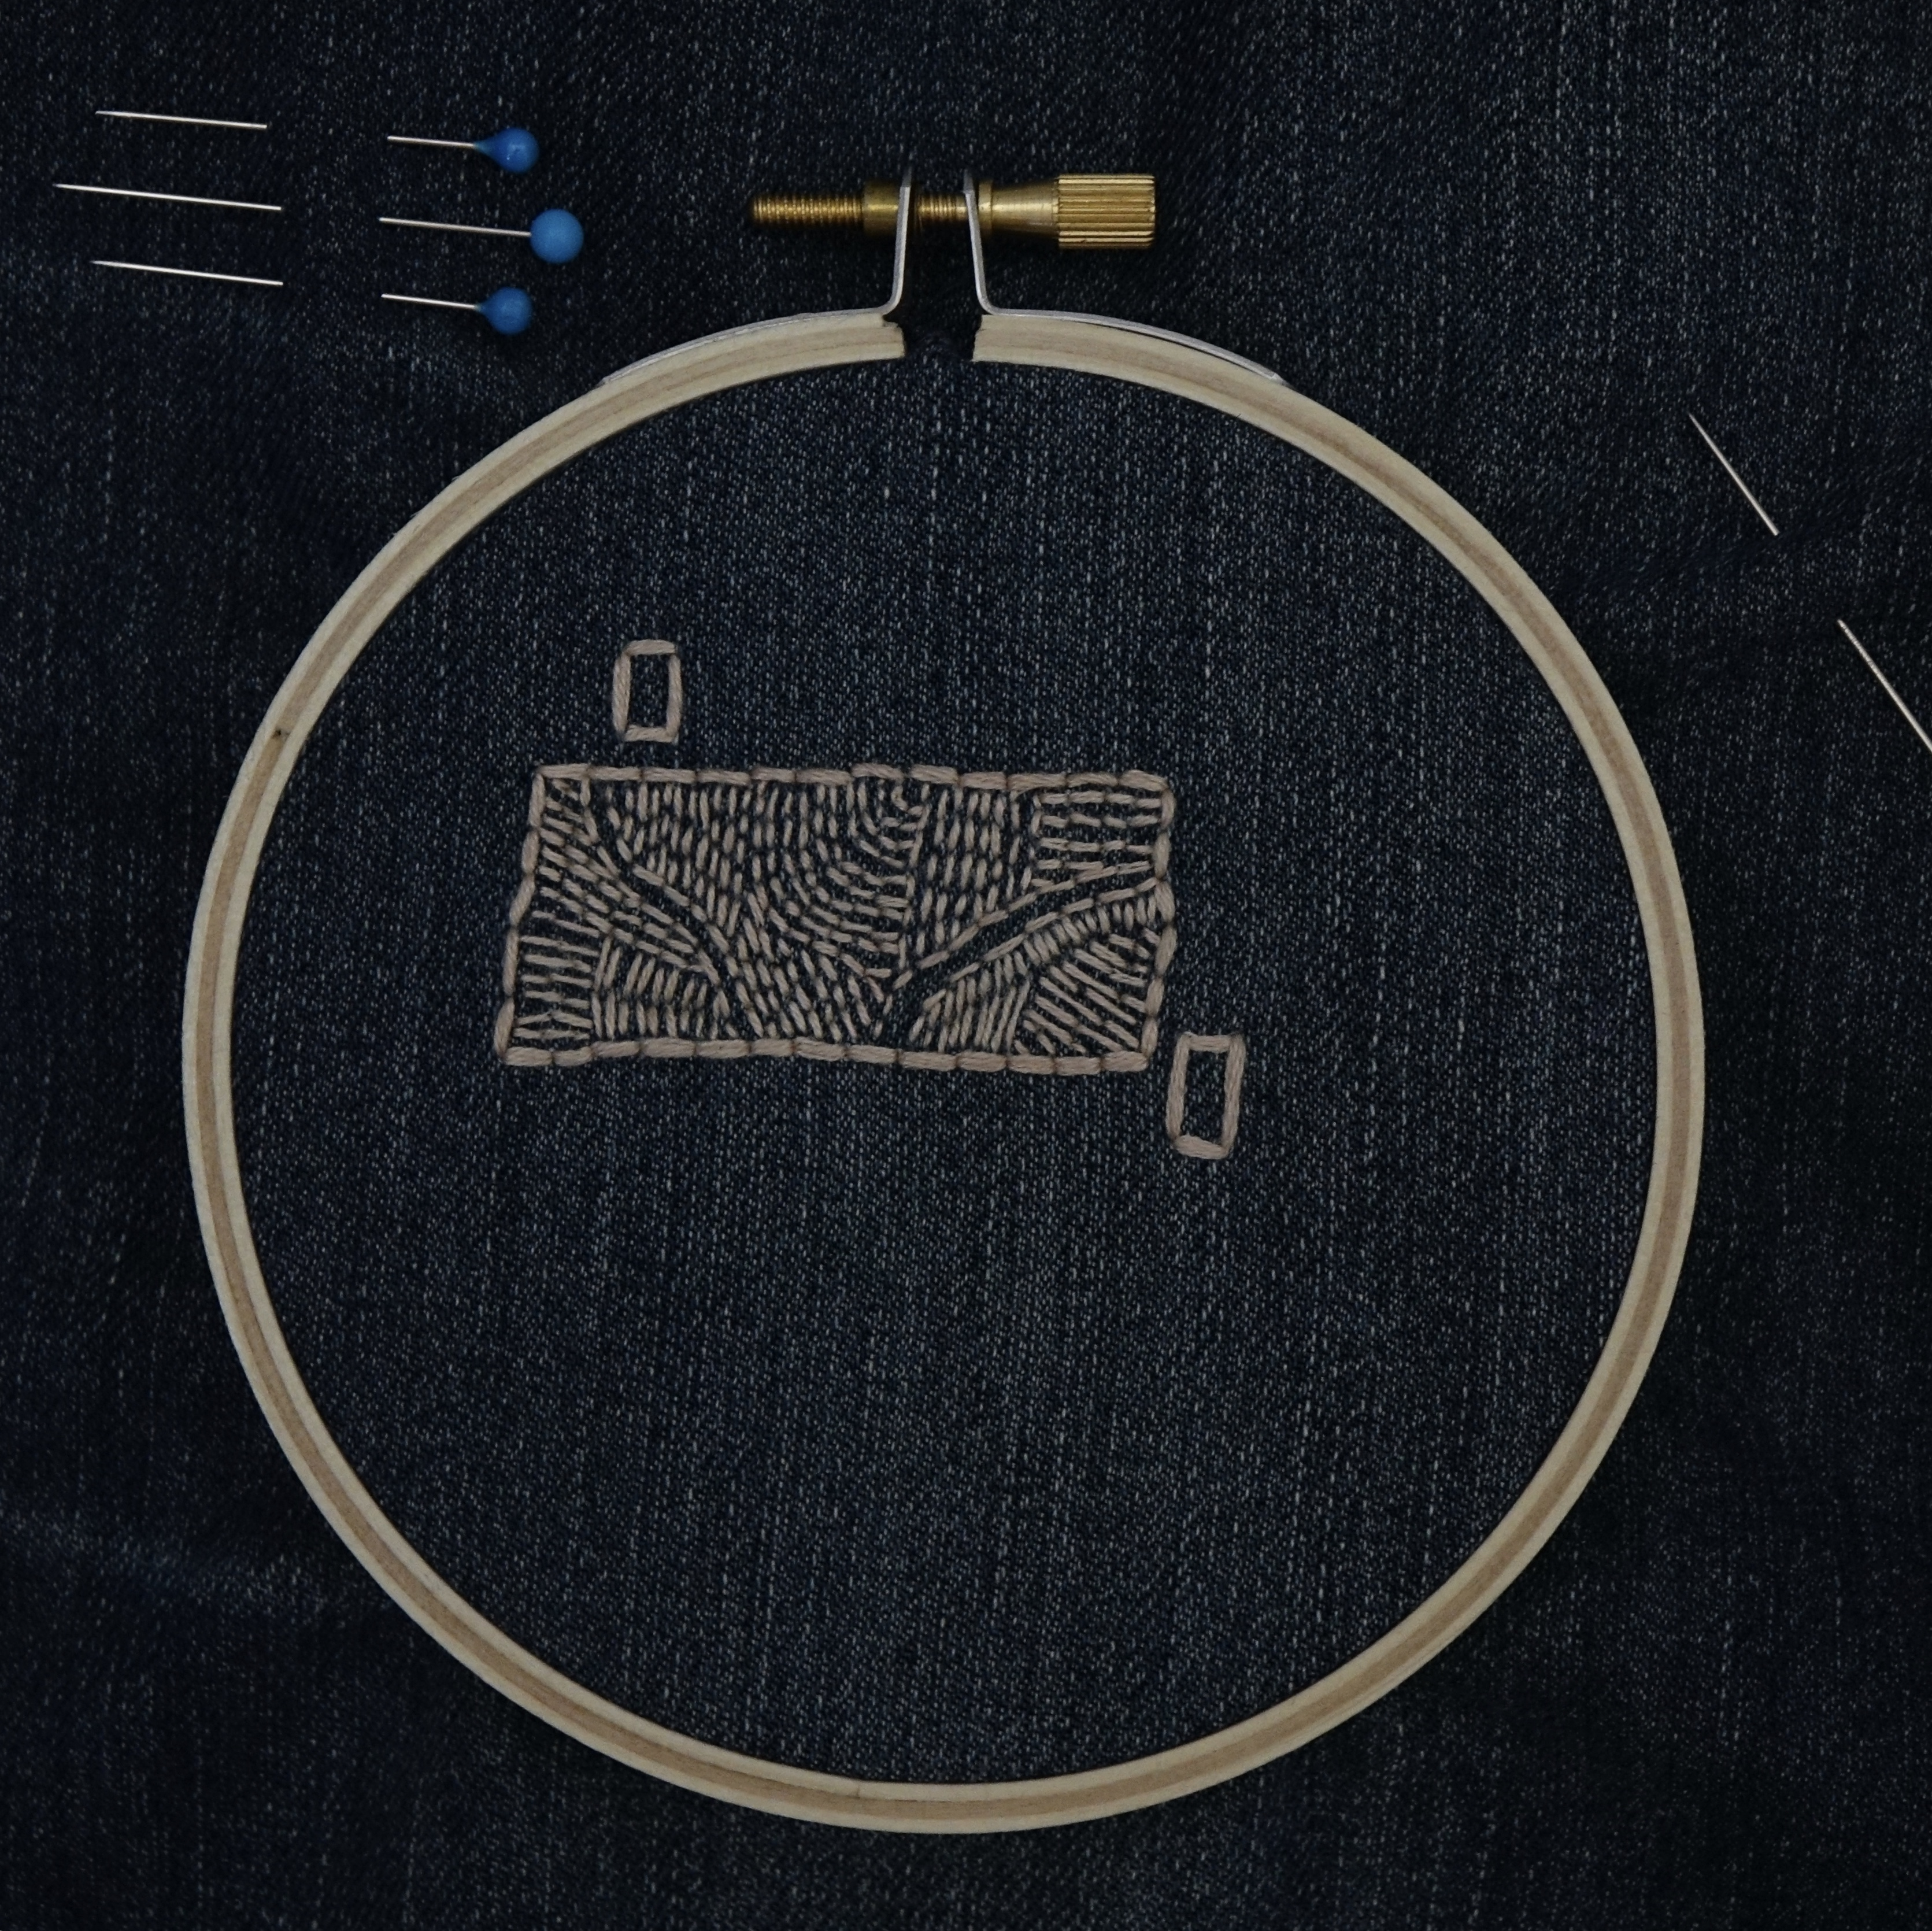 An embroidery hoop set with dark denim, a tan rectangle across the top half, with two mini rectangles on the top left and lower right corners.